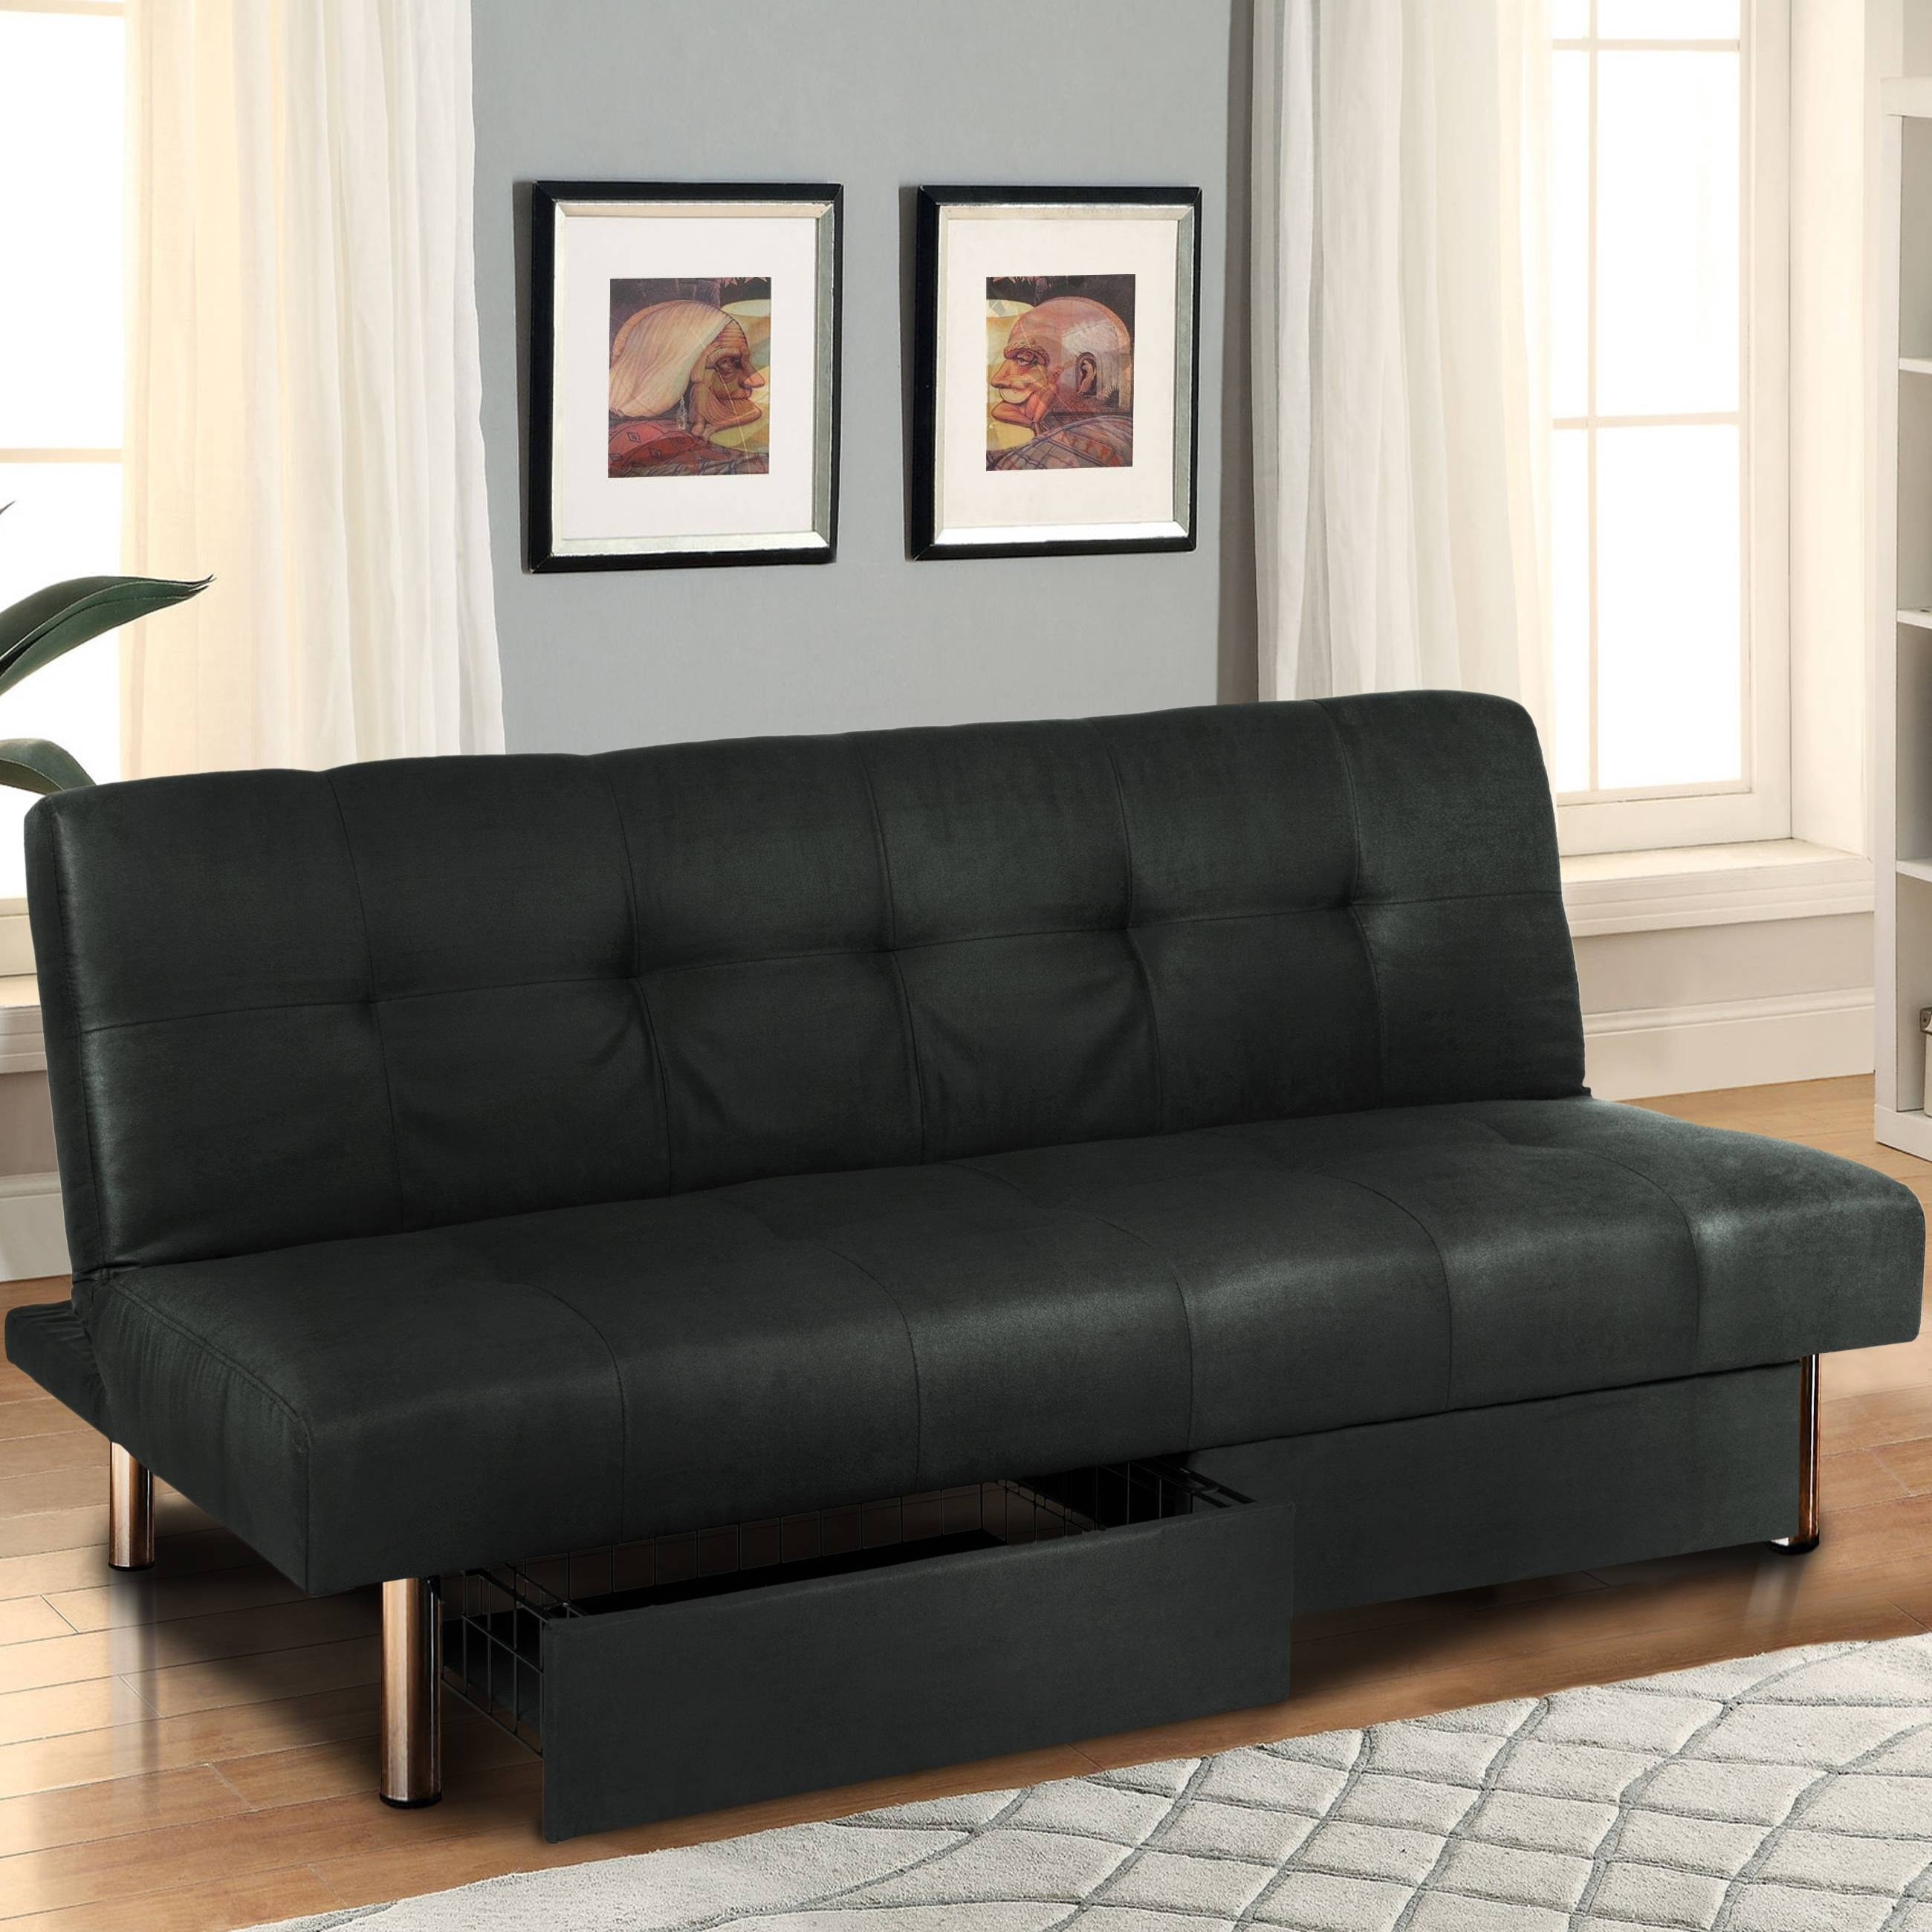 Best Choice Products Modern Entertainment Futon Sofa Bed Fold Up regarding Convertible Futon Sofa Beds (Image 7 of 15)